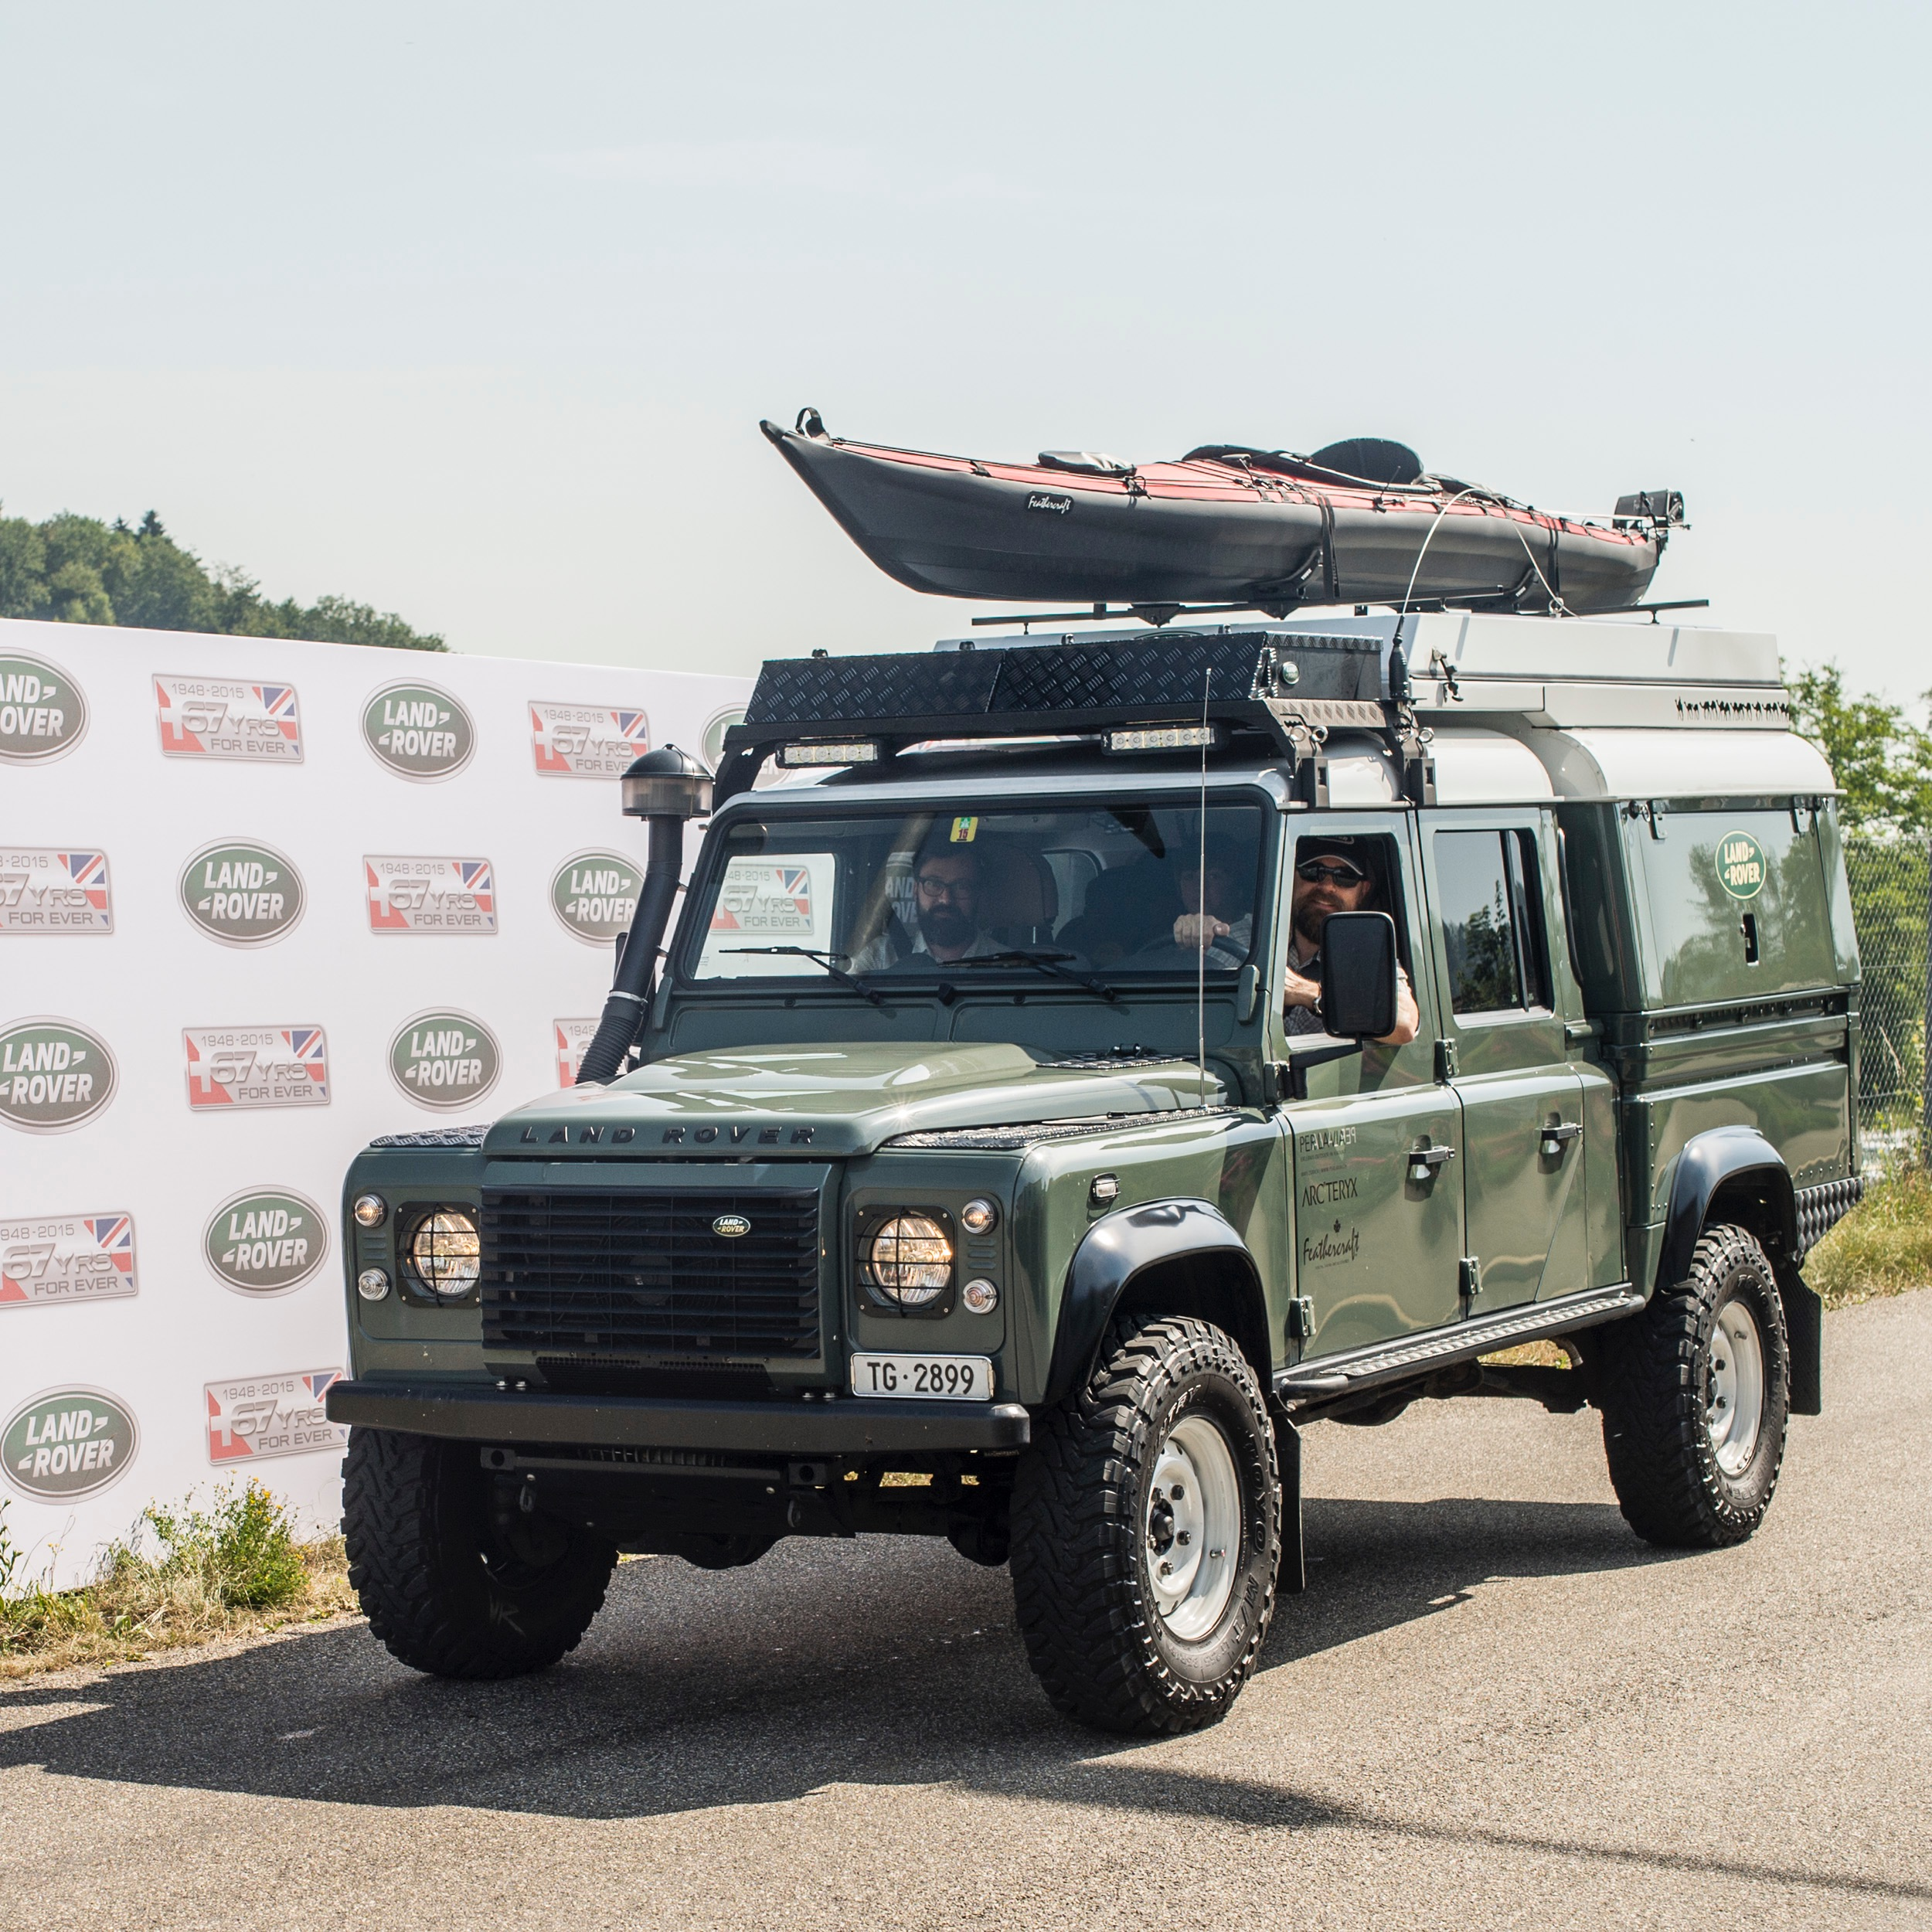 s landrover return heritage security seized lr u rover buyers land homeland cost to blog defender defenders nas new